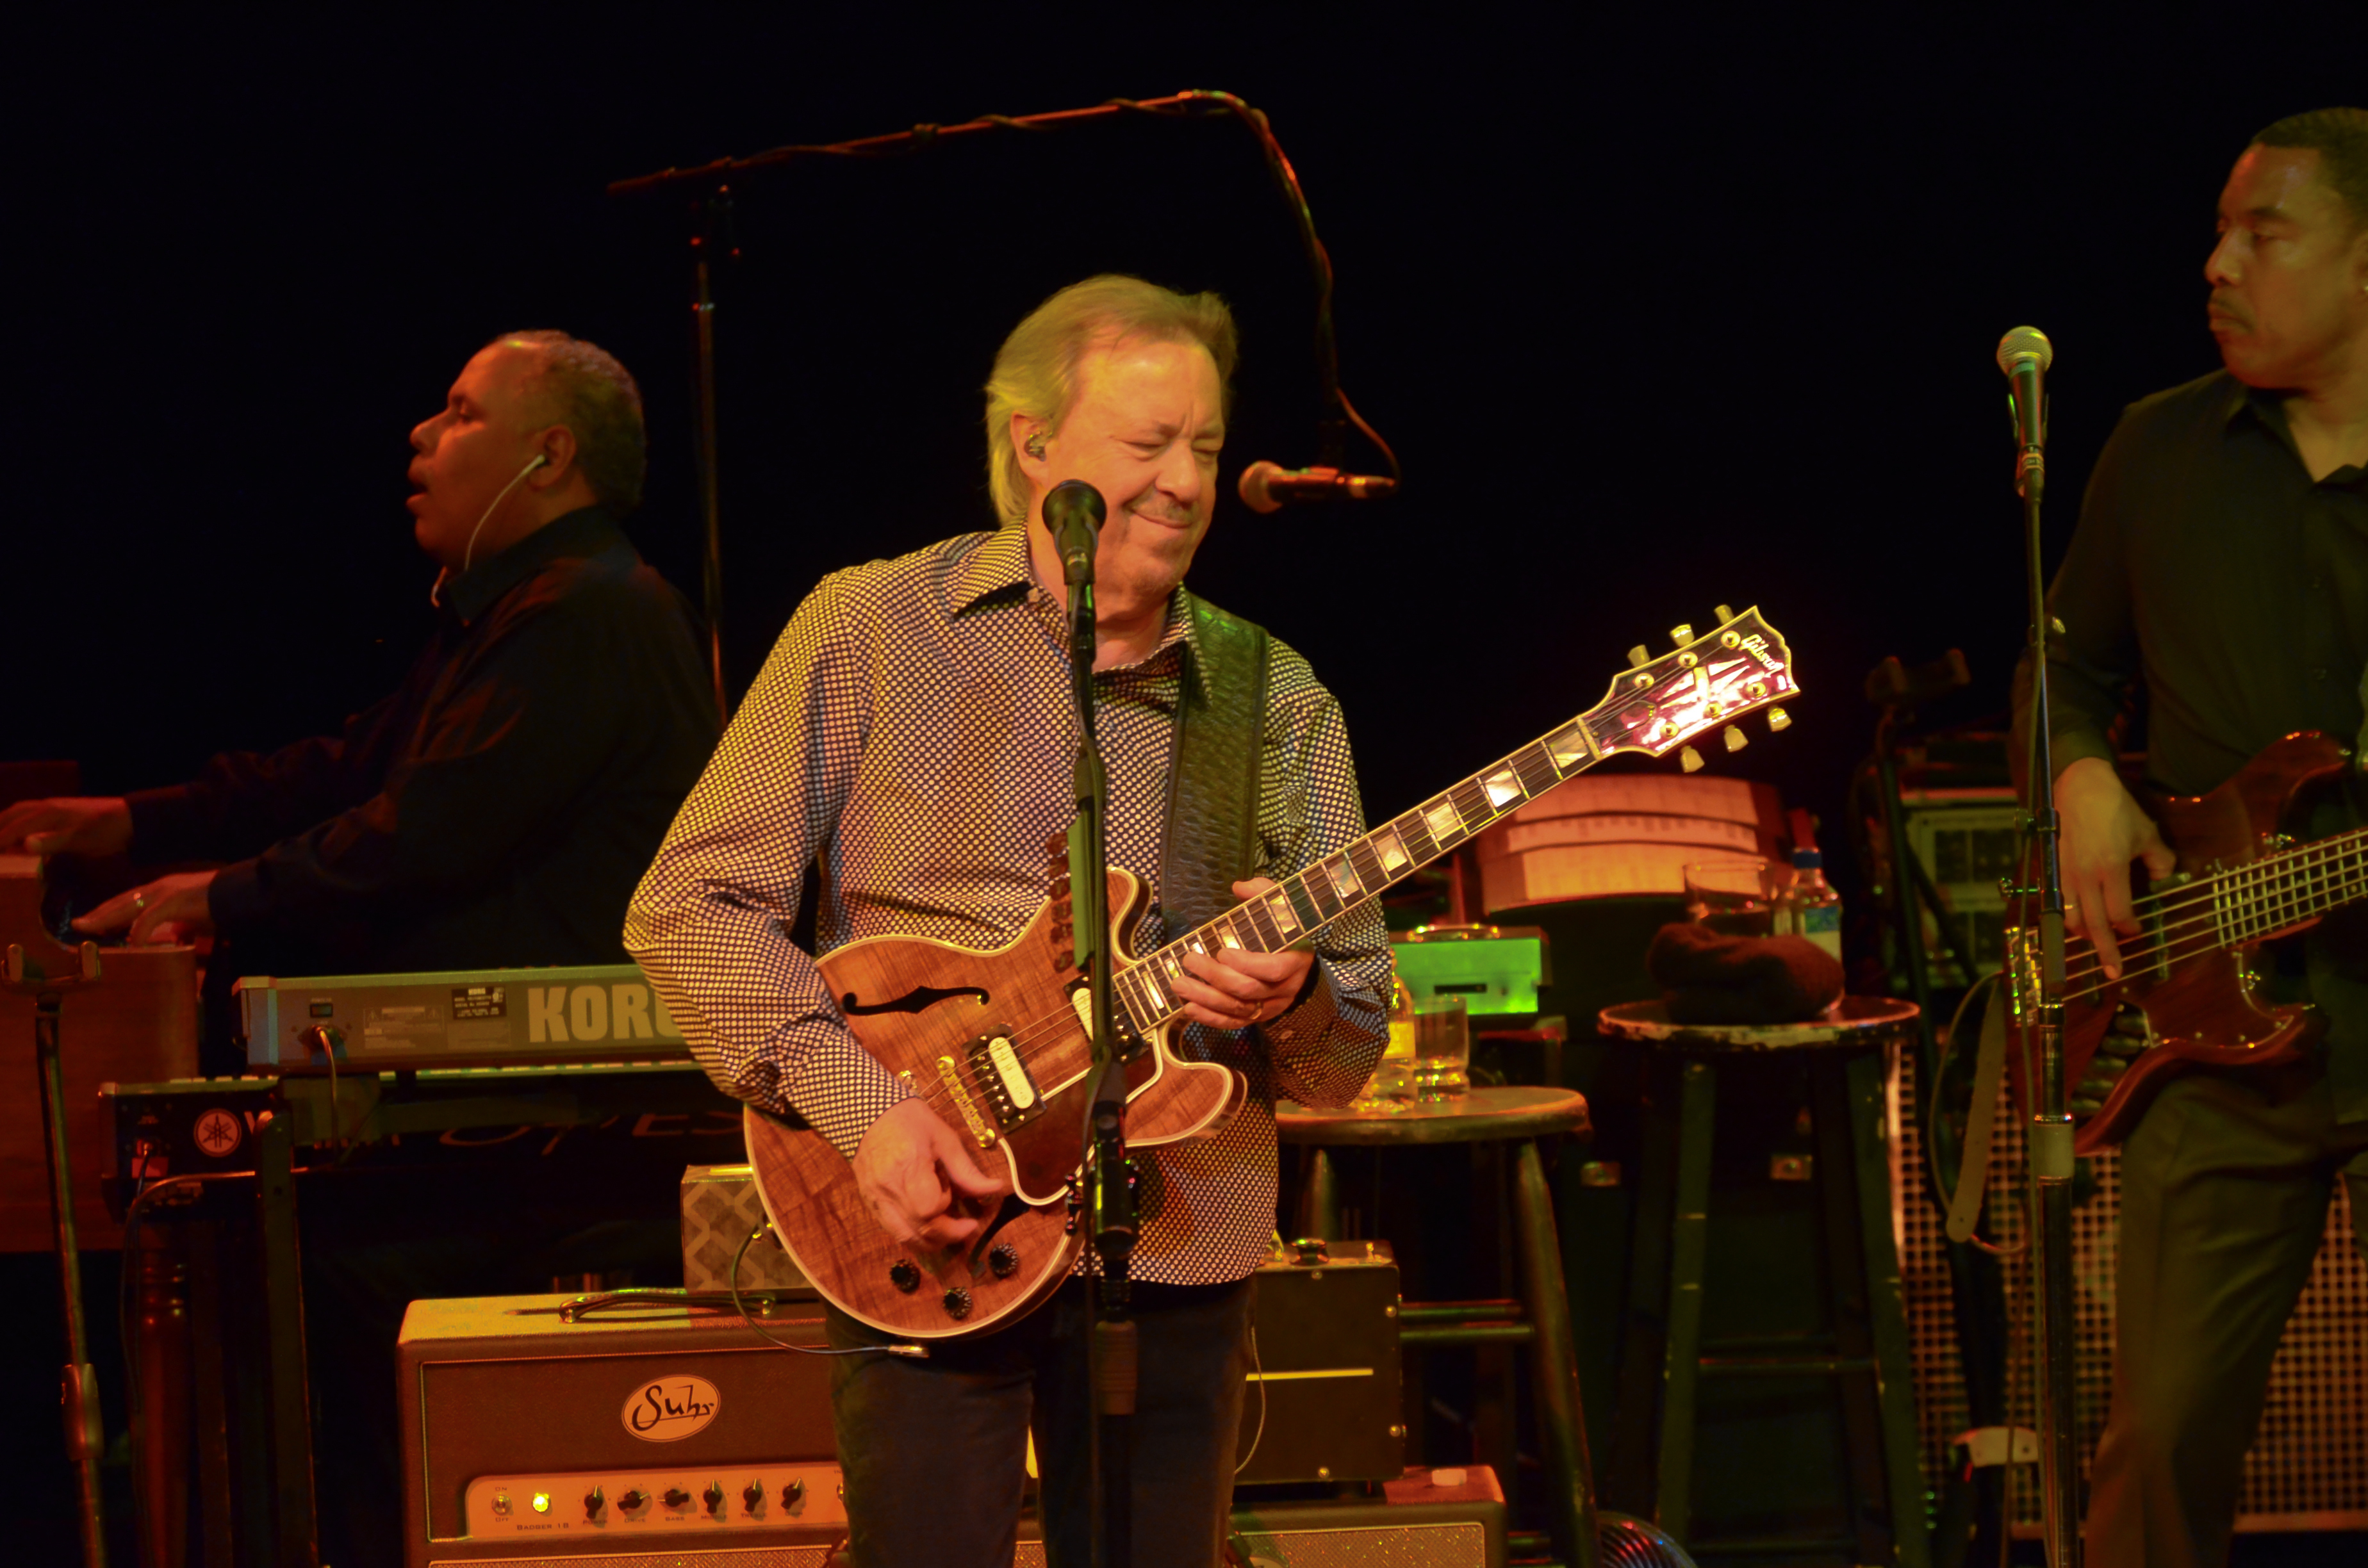 Boz Scaggs at the Nycb Theatre at Westbury on 8-3-2014